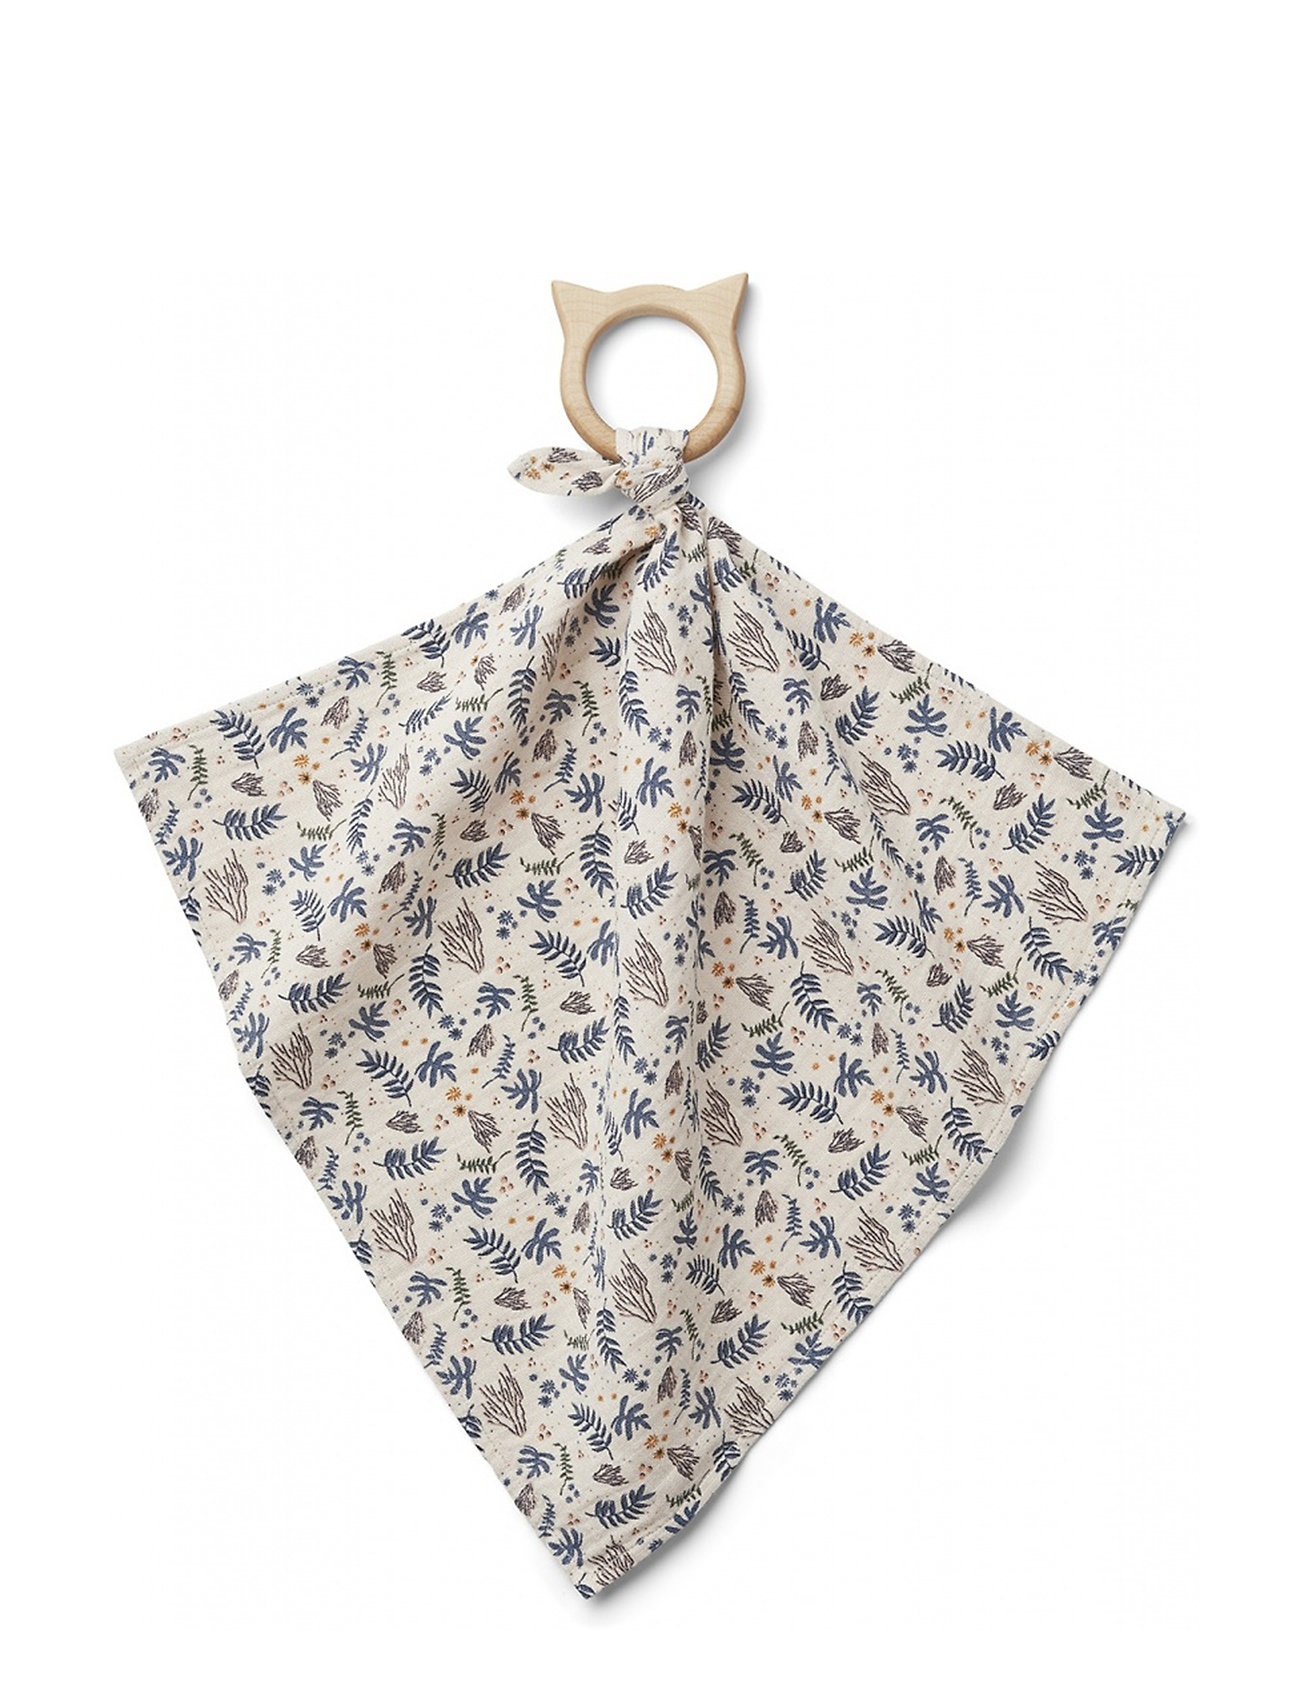 Liewood Dines teether cuddle cloth - CORAL FLORAL/MIX